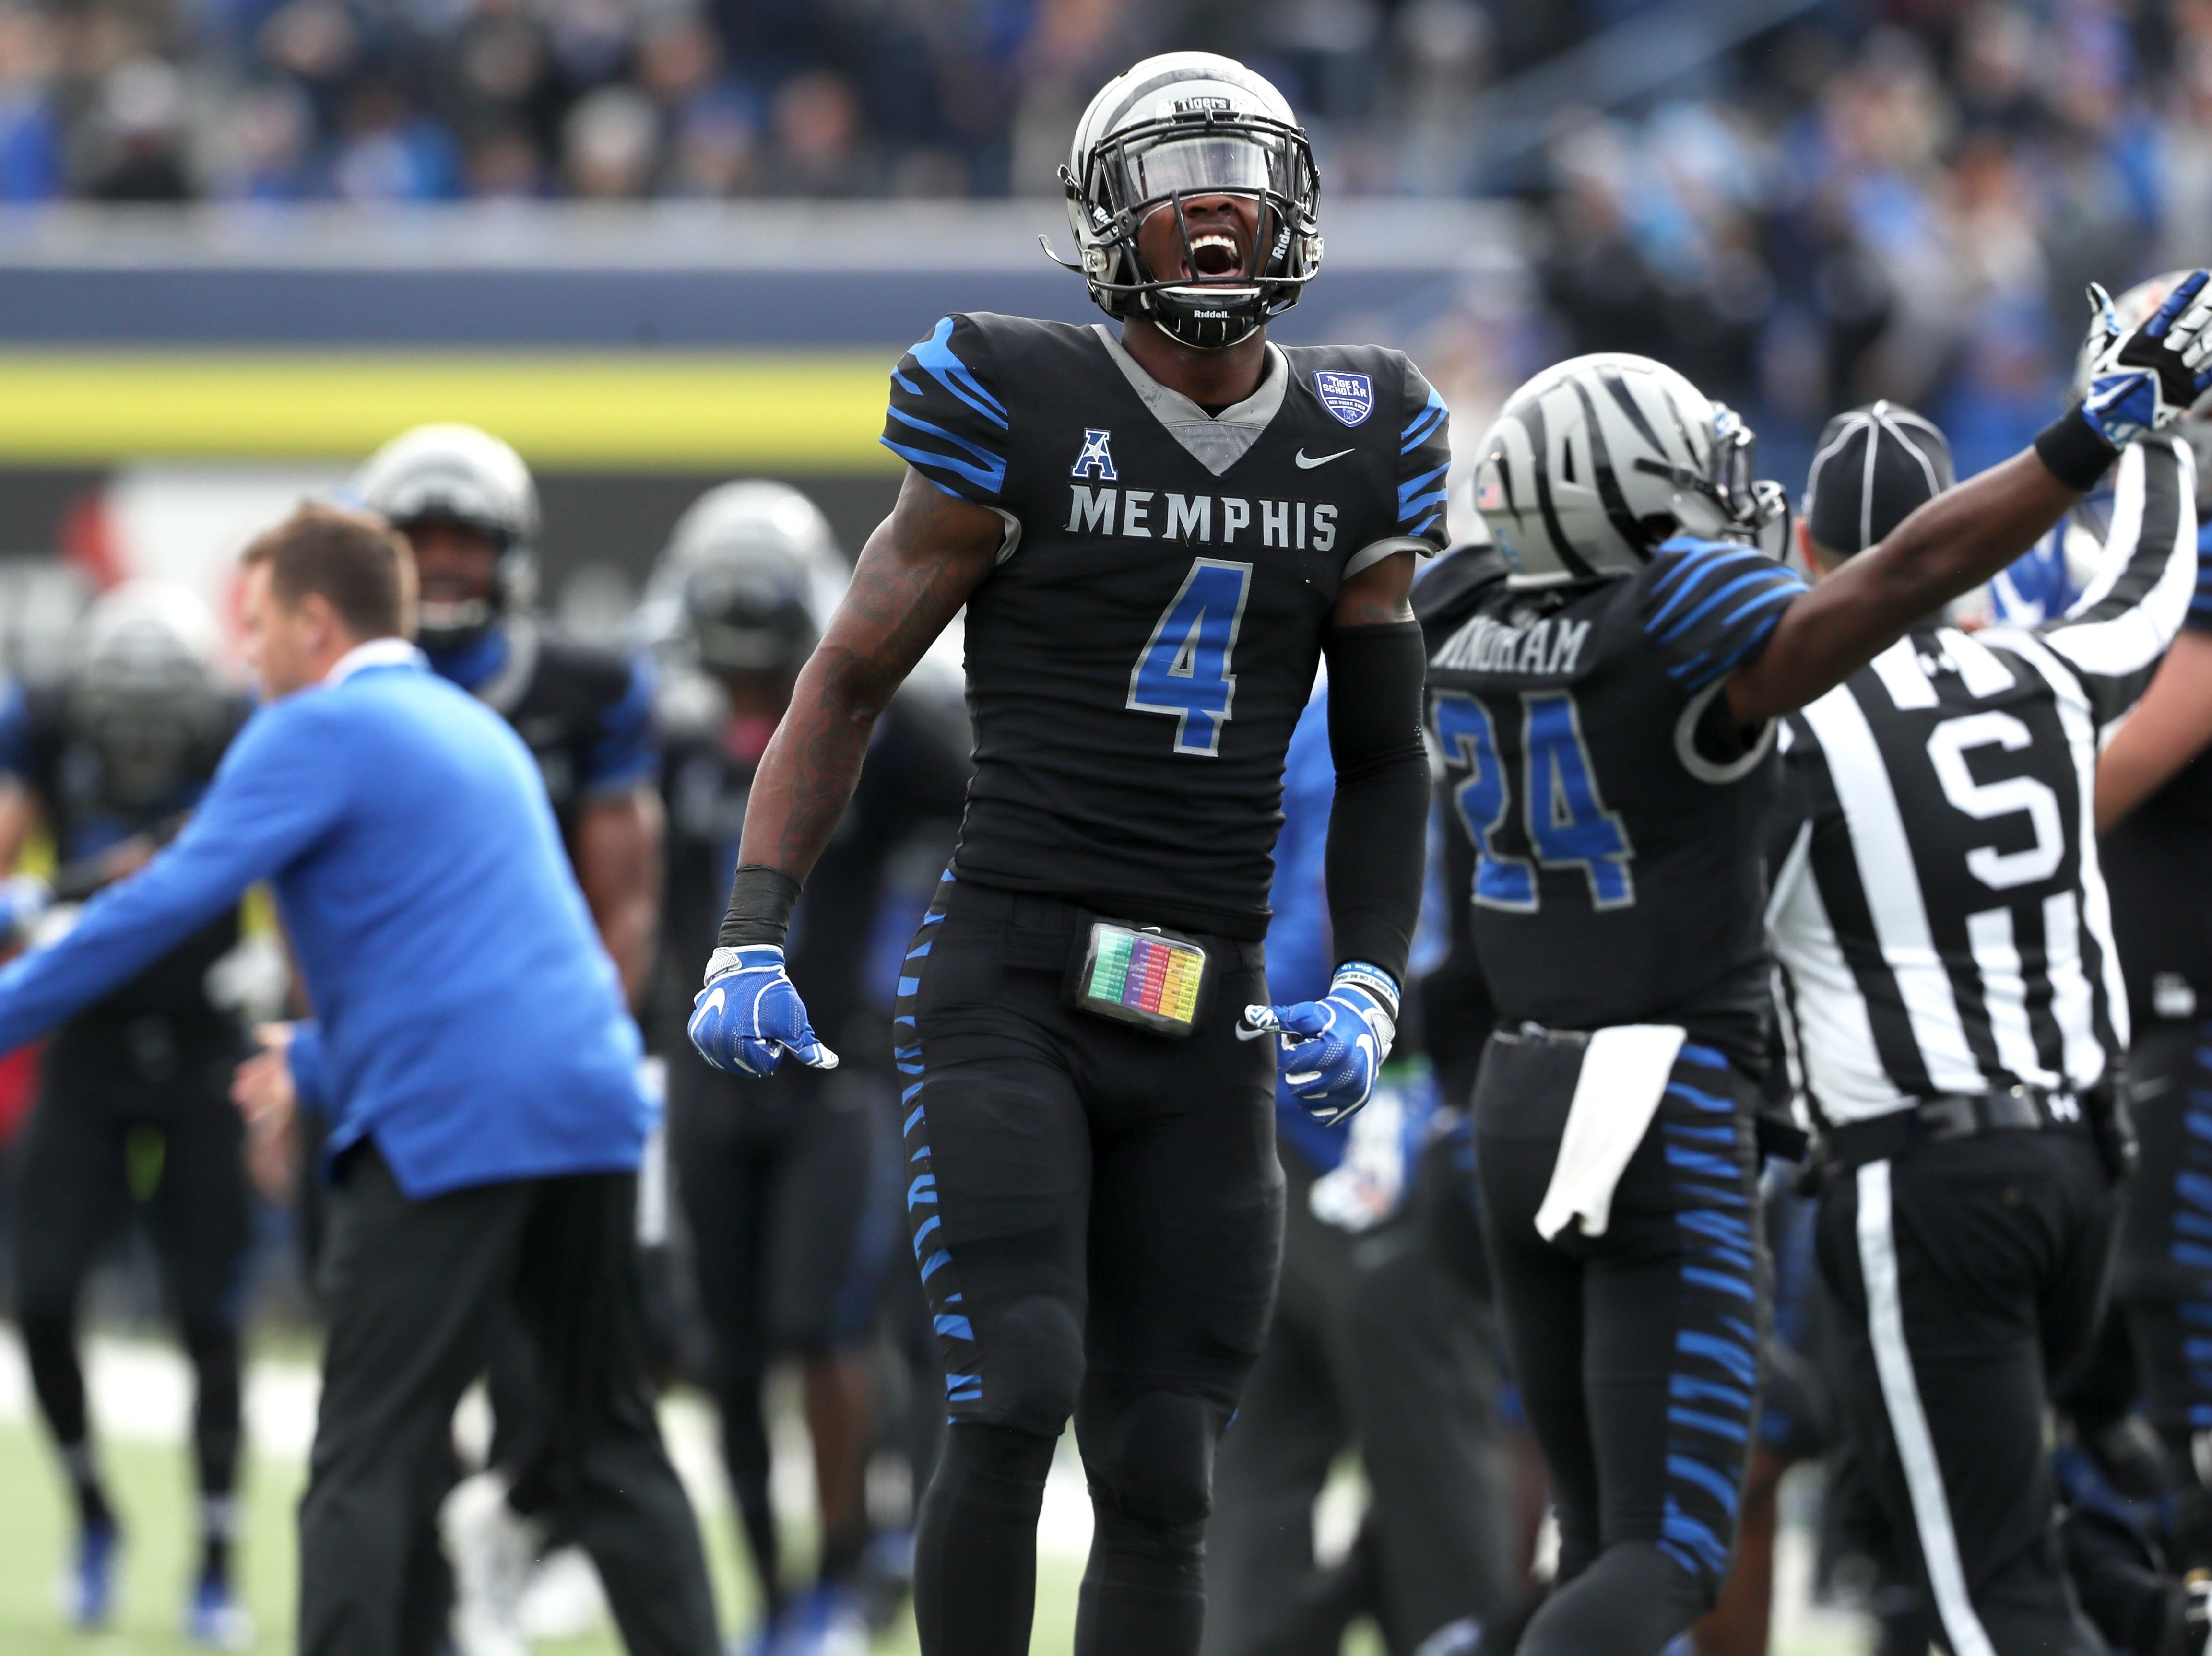 Memphis' Josh Perry celebrates on the sideline against Houston Cougars as the Tigers win the AAC West title 52-31 at the Liberty Bowl on Friday, Nov. 23, 2018.